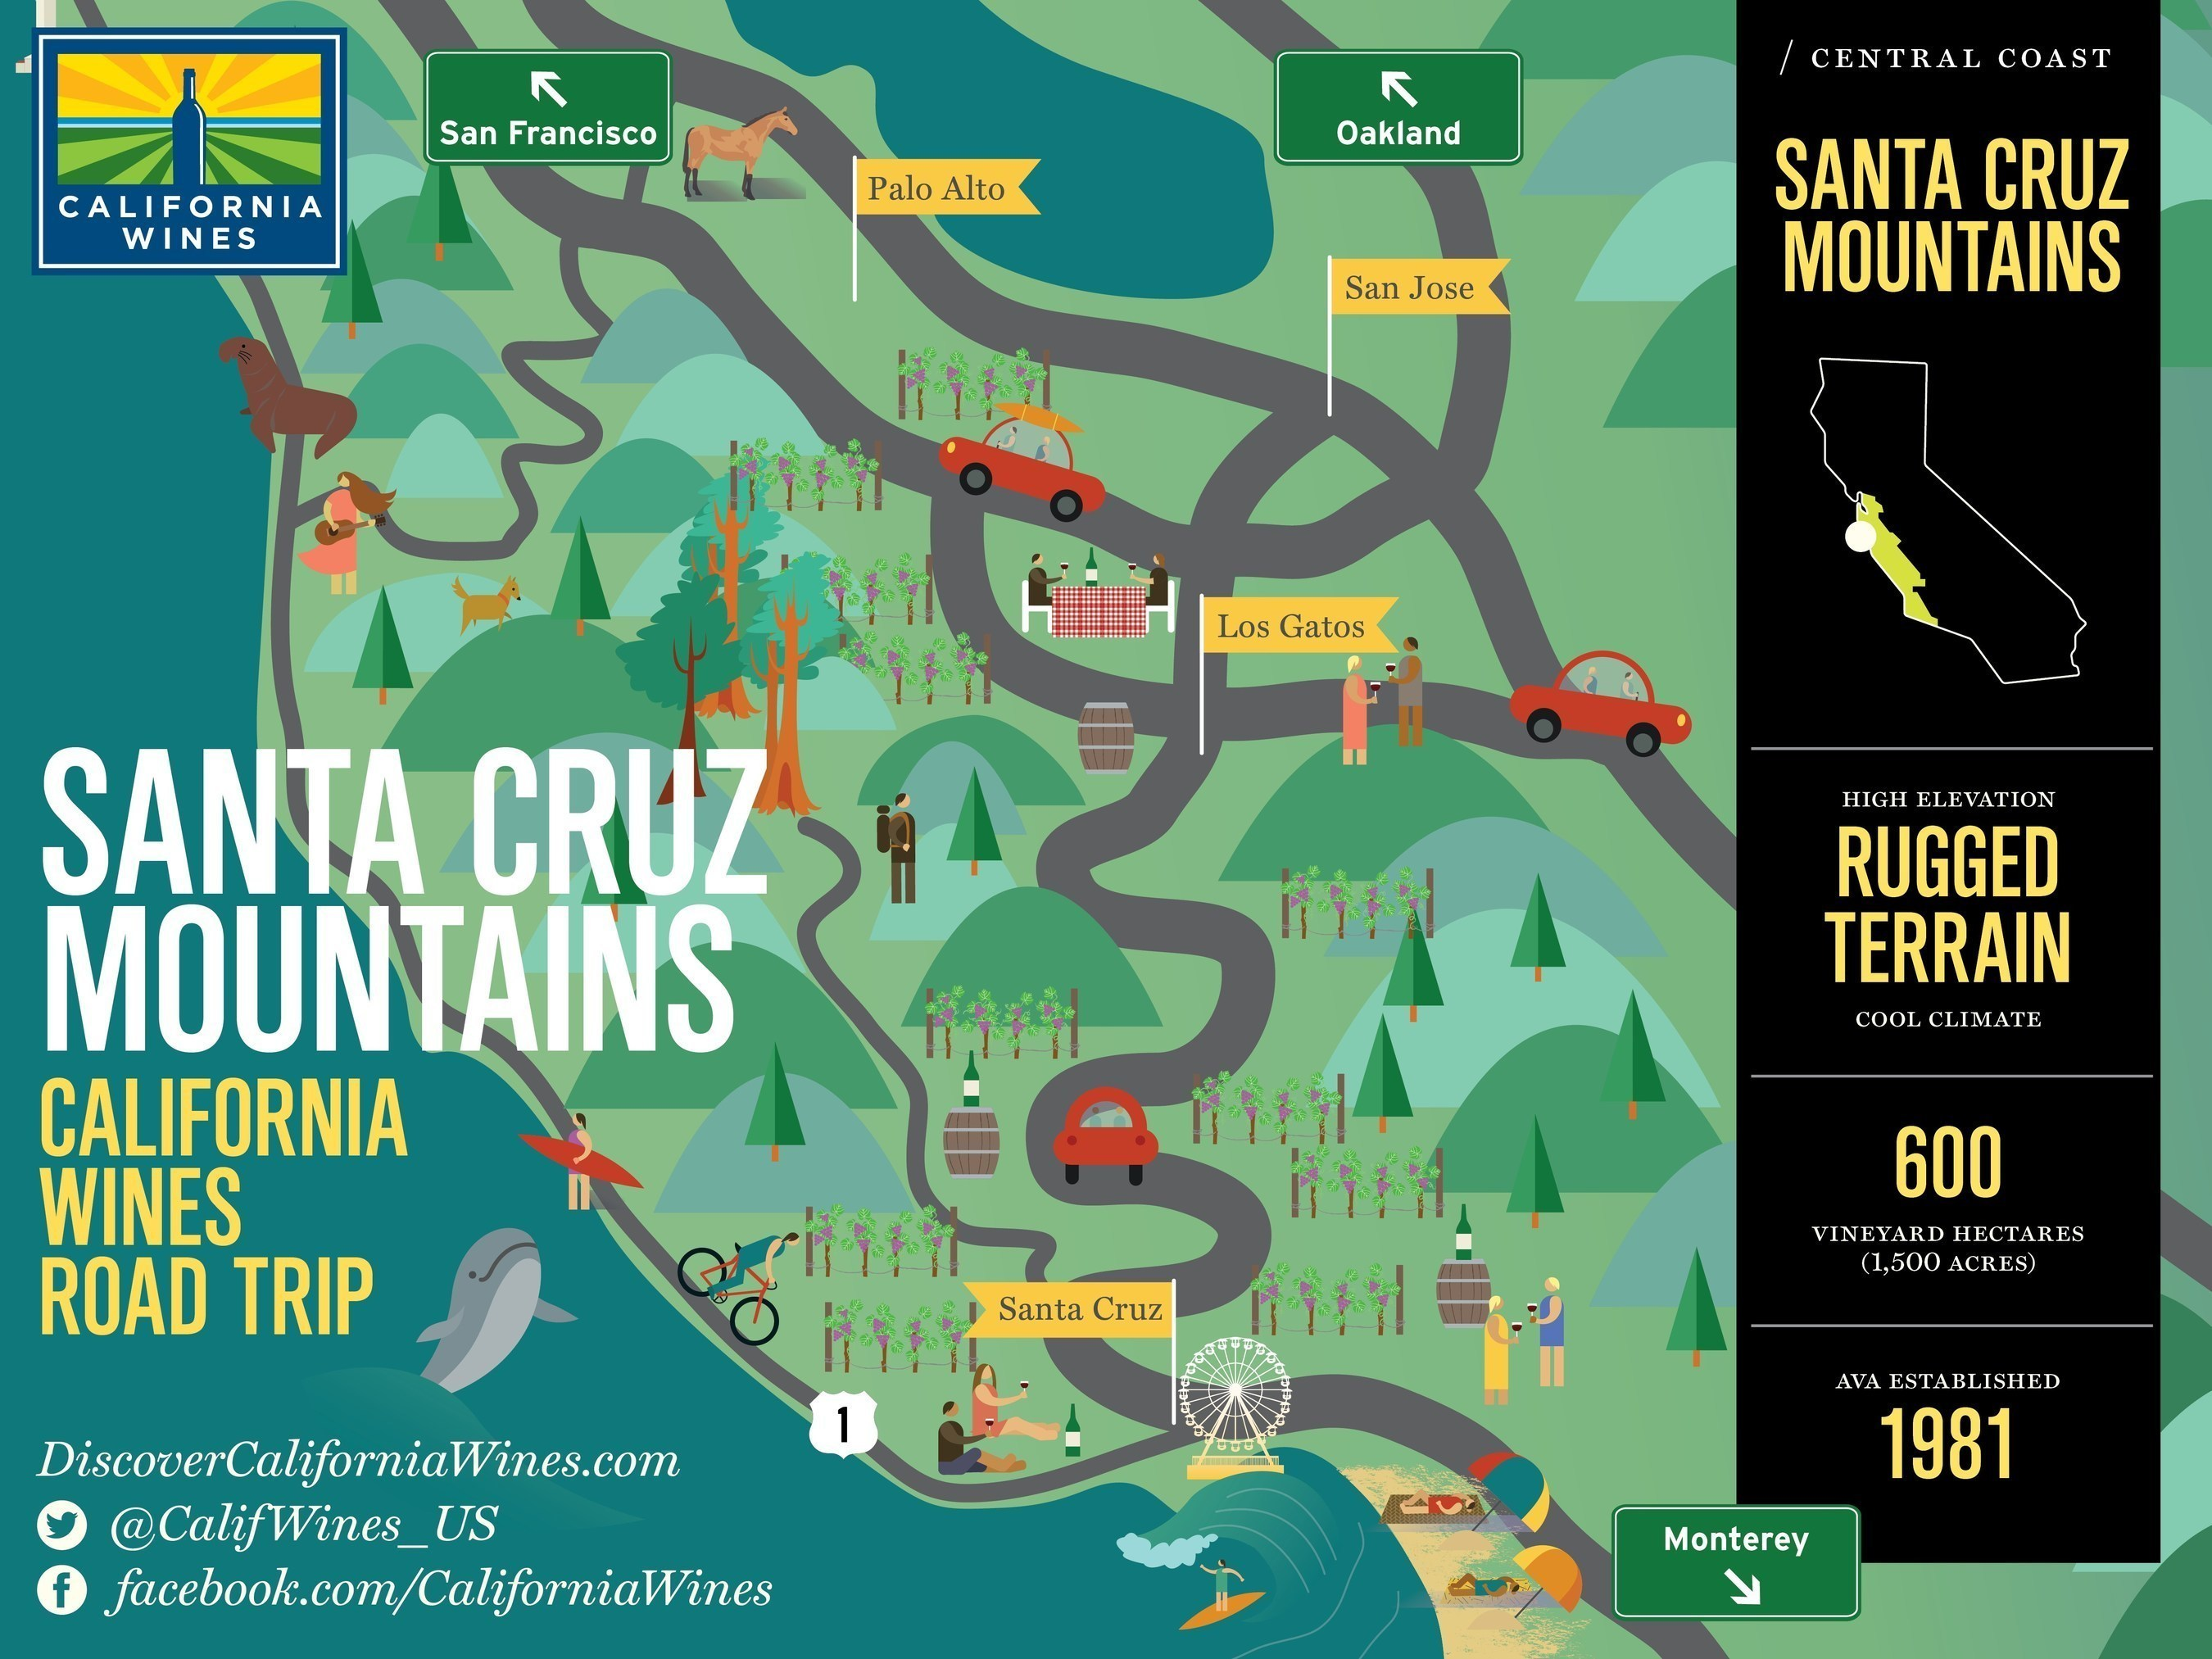 California's Santa Cruz Mountains wine region has more than 60 wineries that produce world-class wines in a cool climate, high elevation terrain.